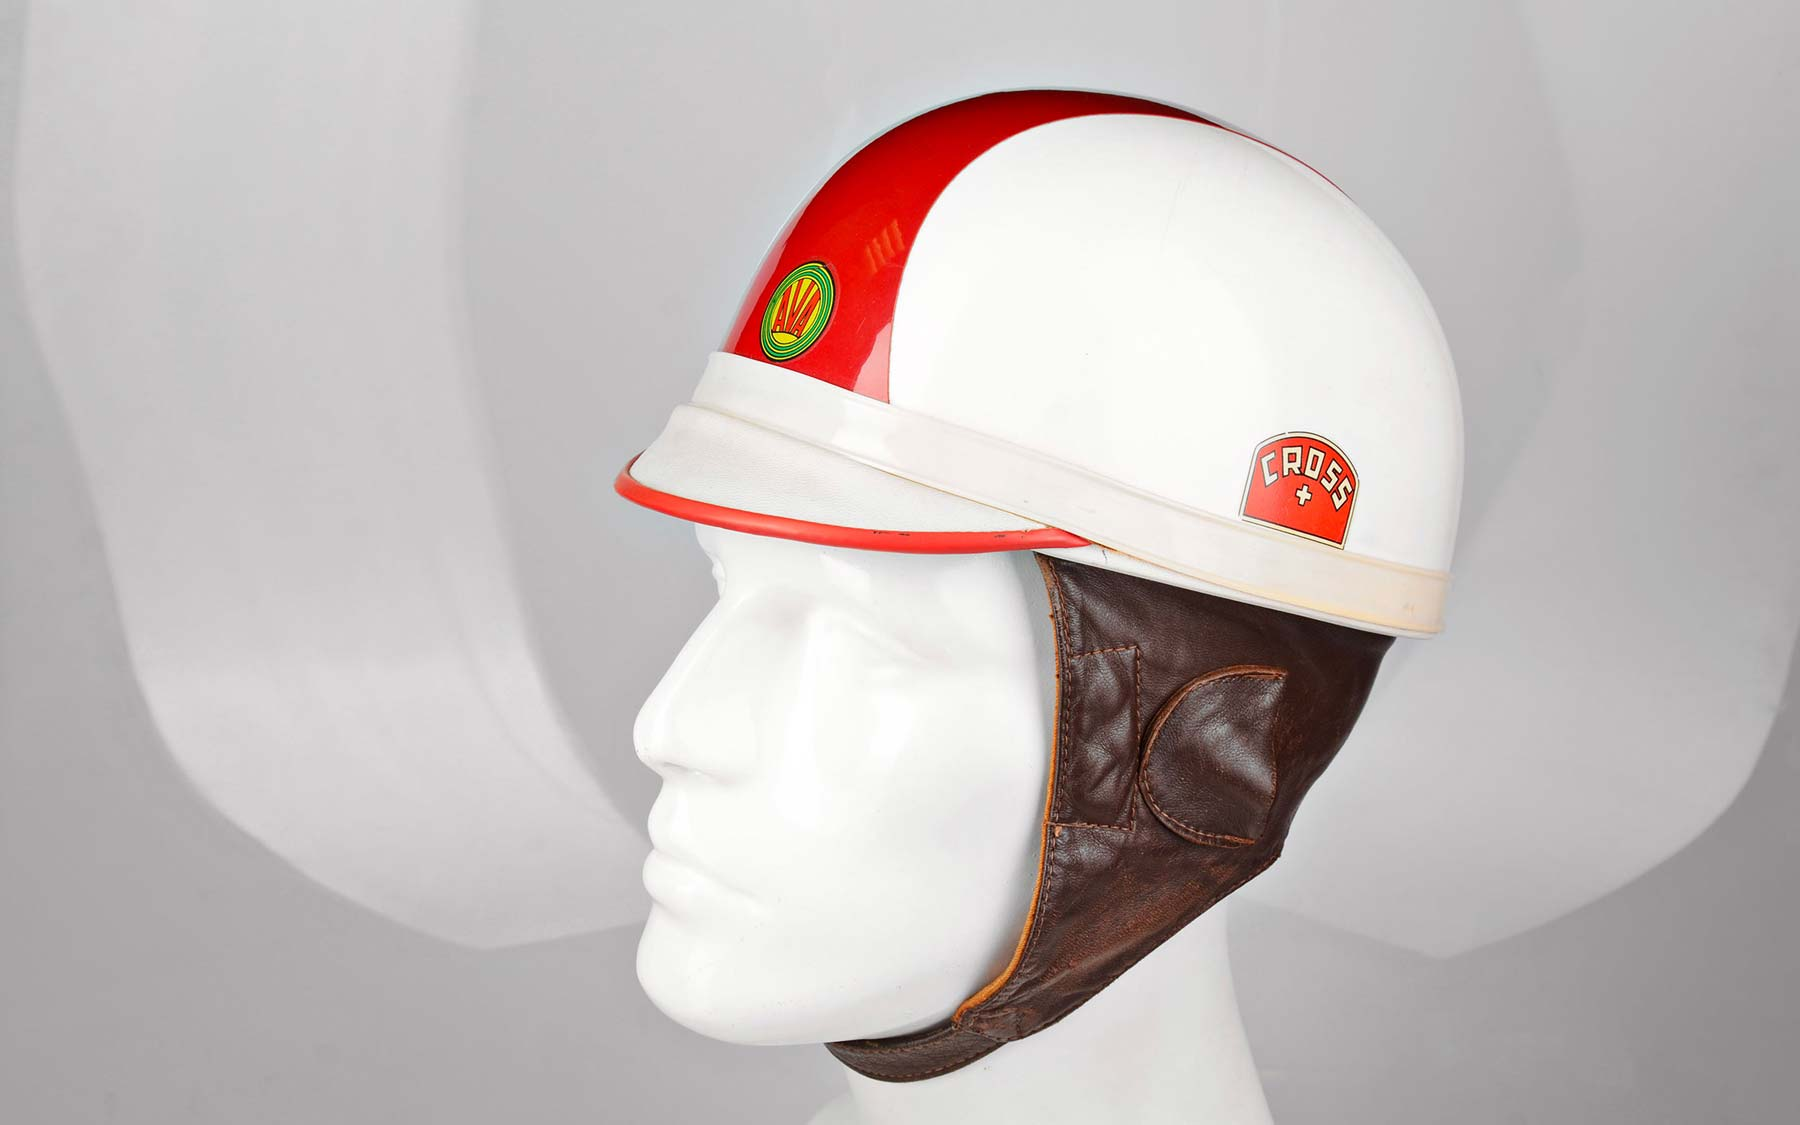 First thermoplastic helmets.